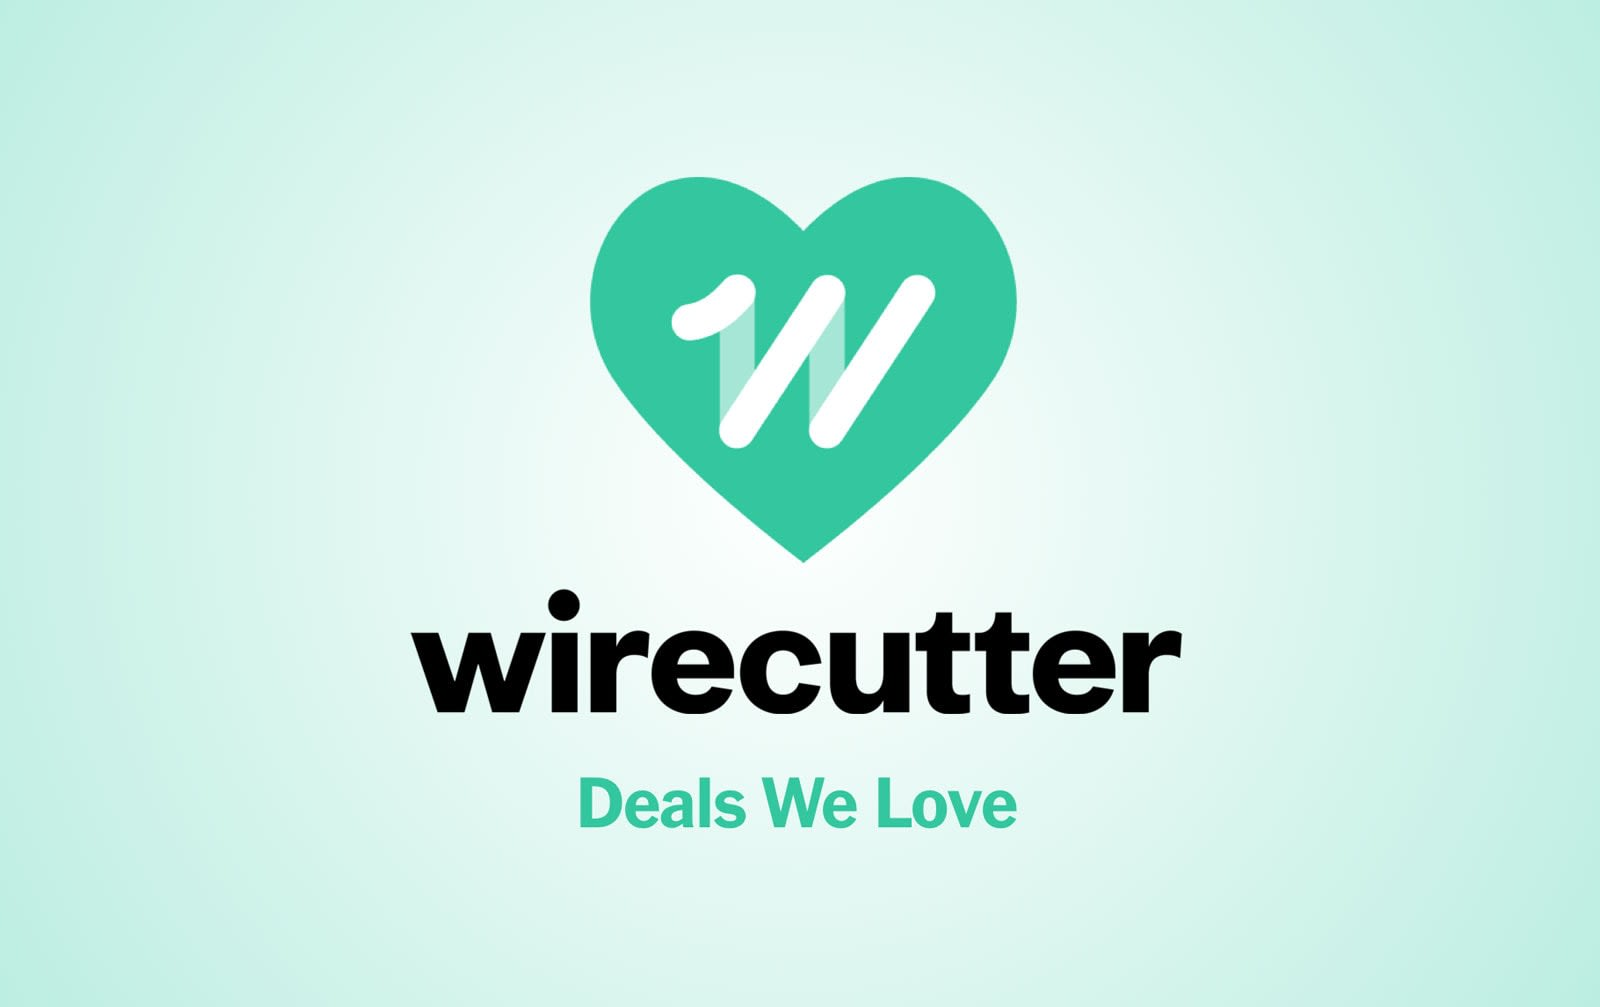 Wirecutters Best Deals Save 30 On A Wd My Book 6tb External Hard Usb Harddisk This Post Was Done In Partnership With Wirecutter When Readers Choose To Buy Independently Chosen Editorial Picks It May Earn Affiliate